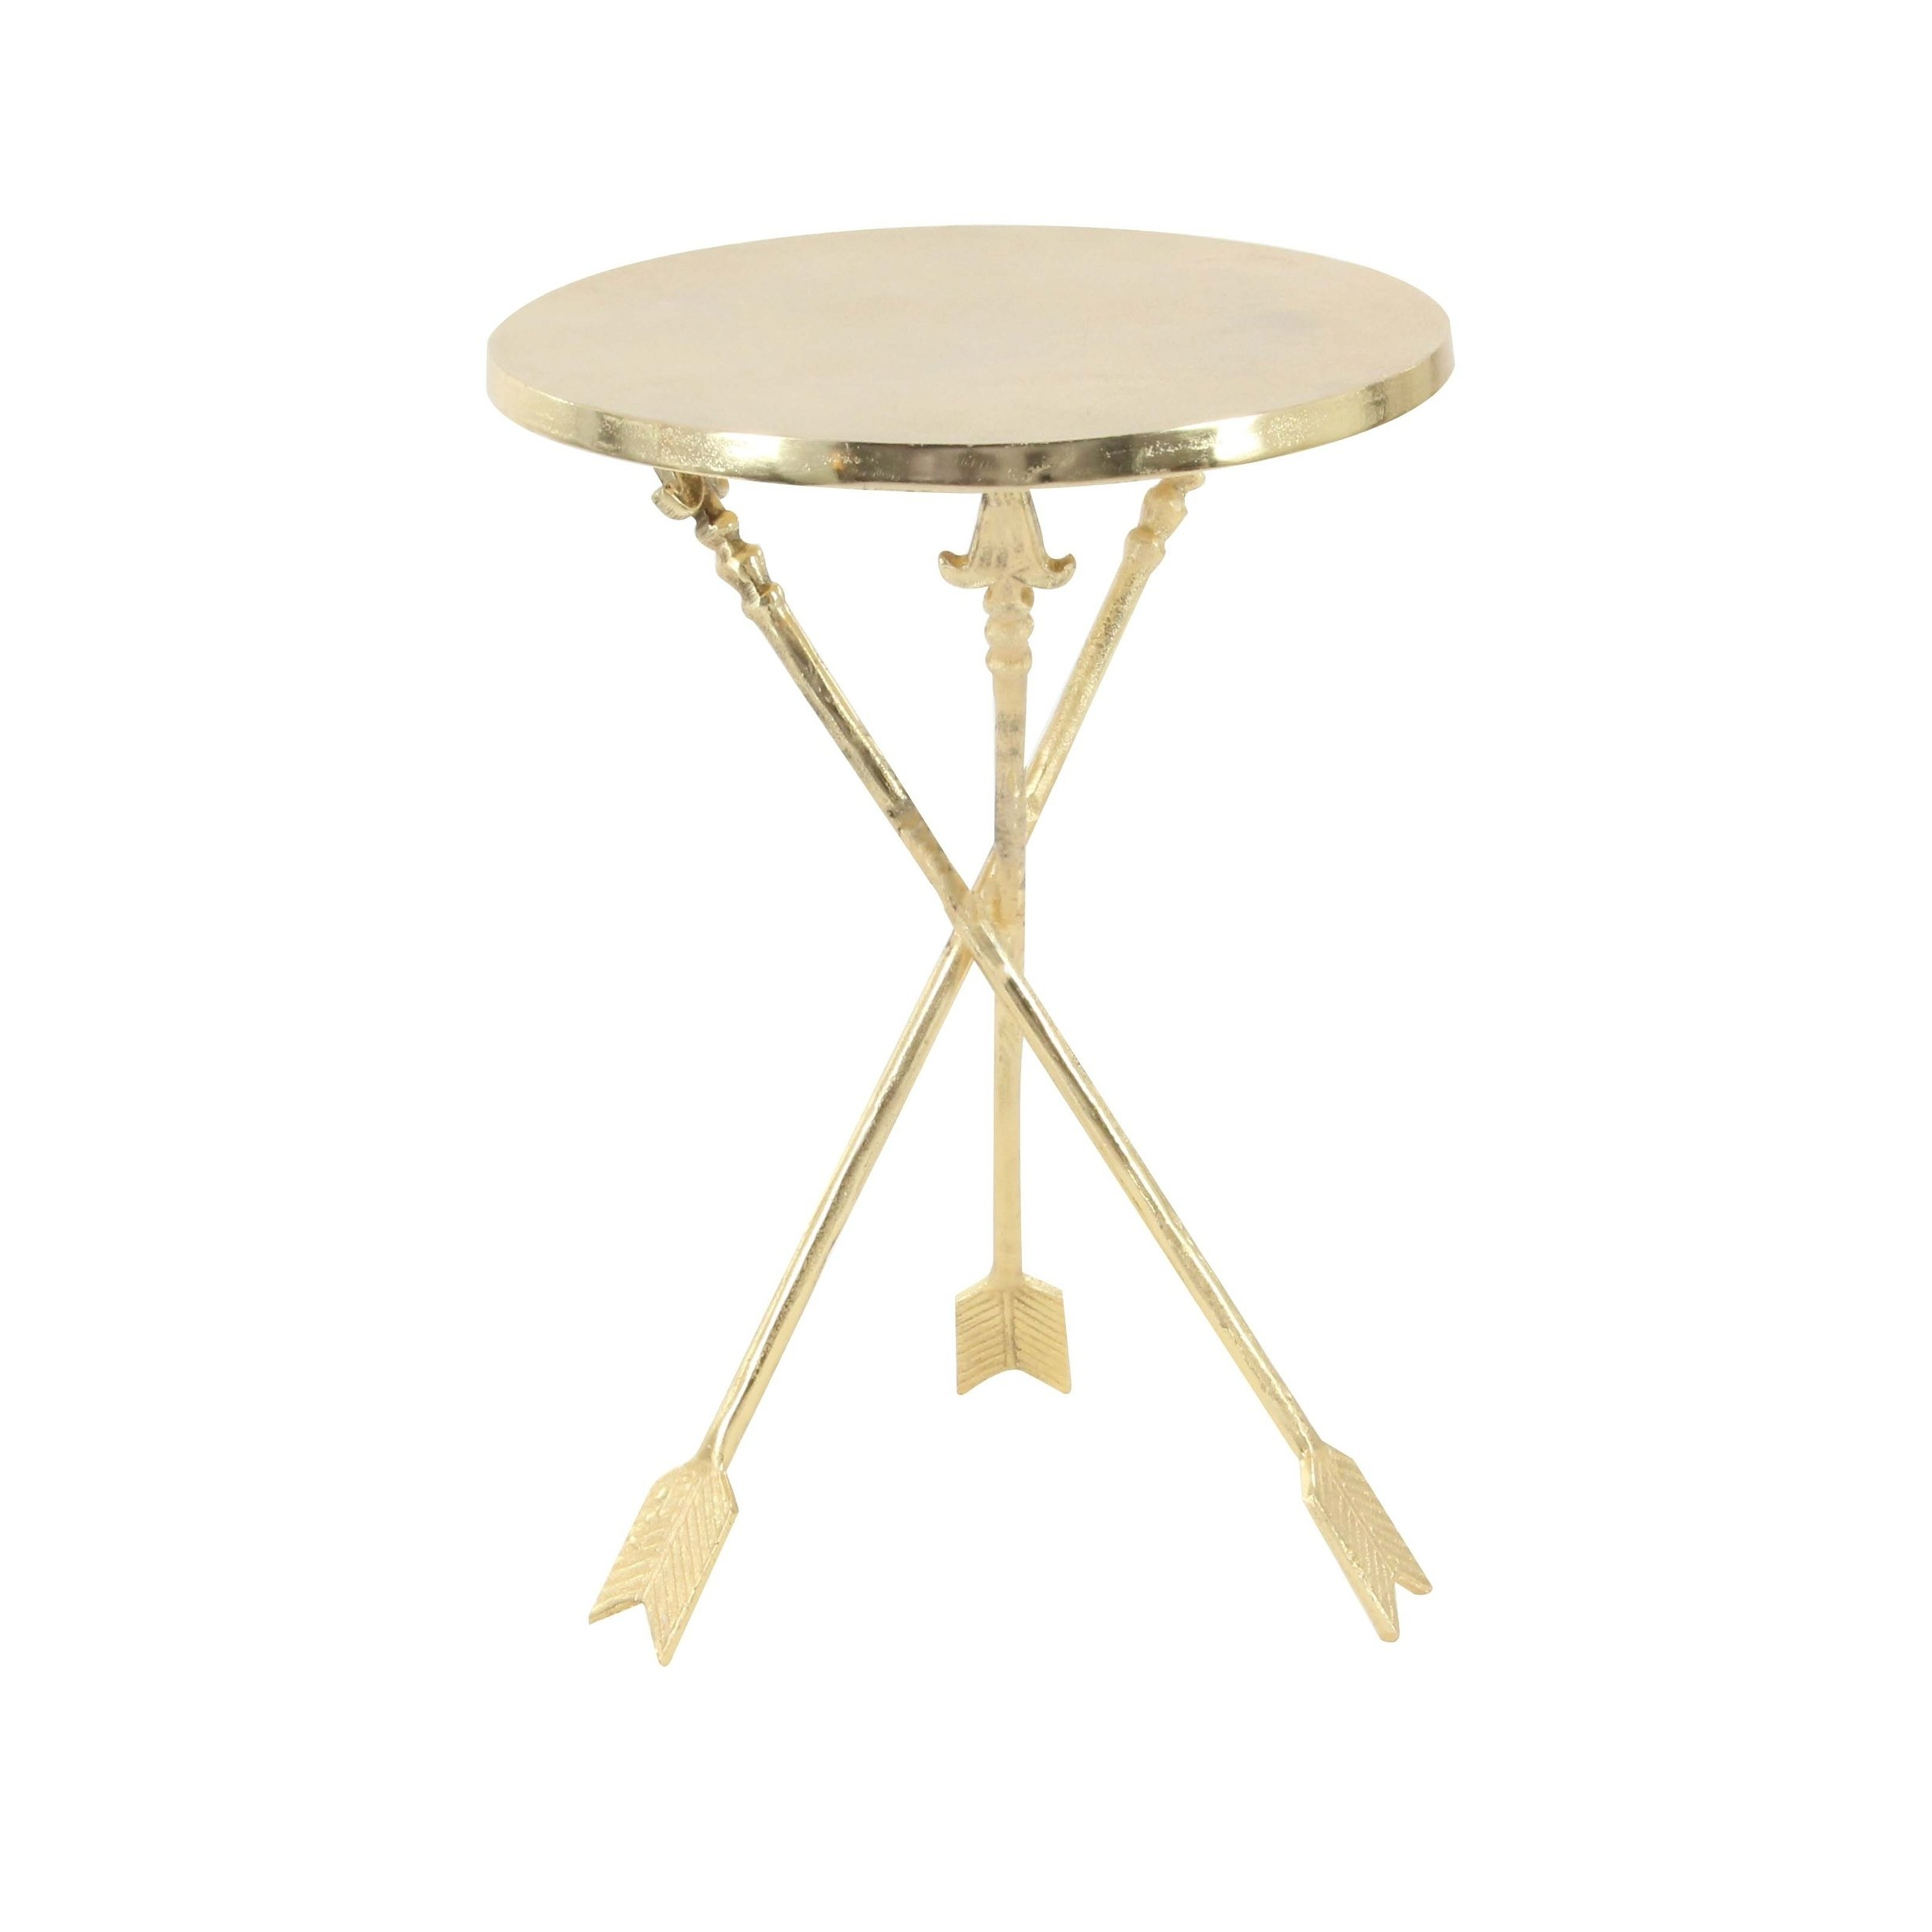 contemporary inch round gold aluminum accent table studio free shipping today grill utensils glass coffee vintage metal legs ikea garden storage extra wide console transparent